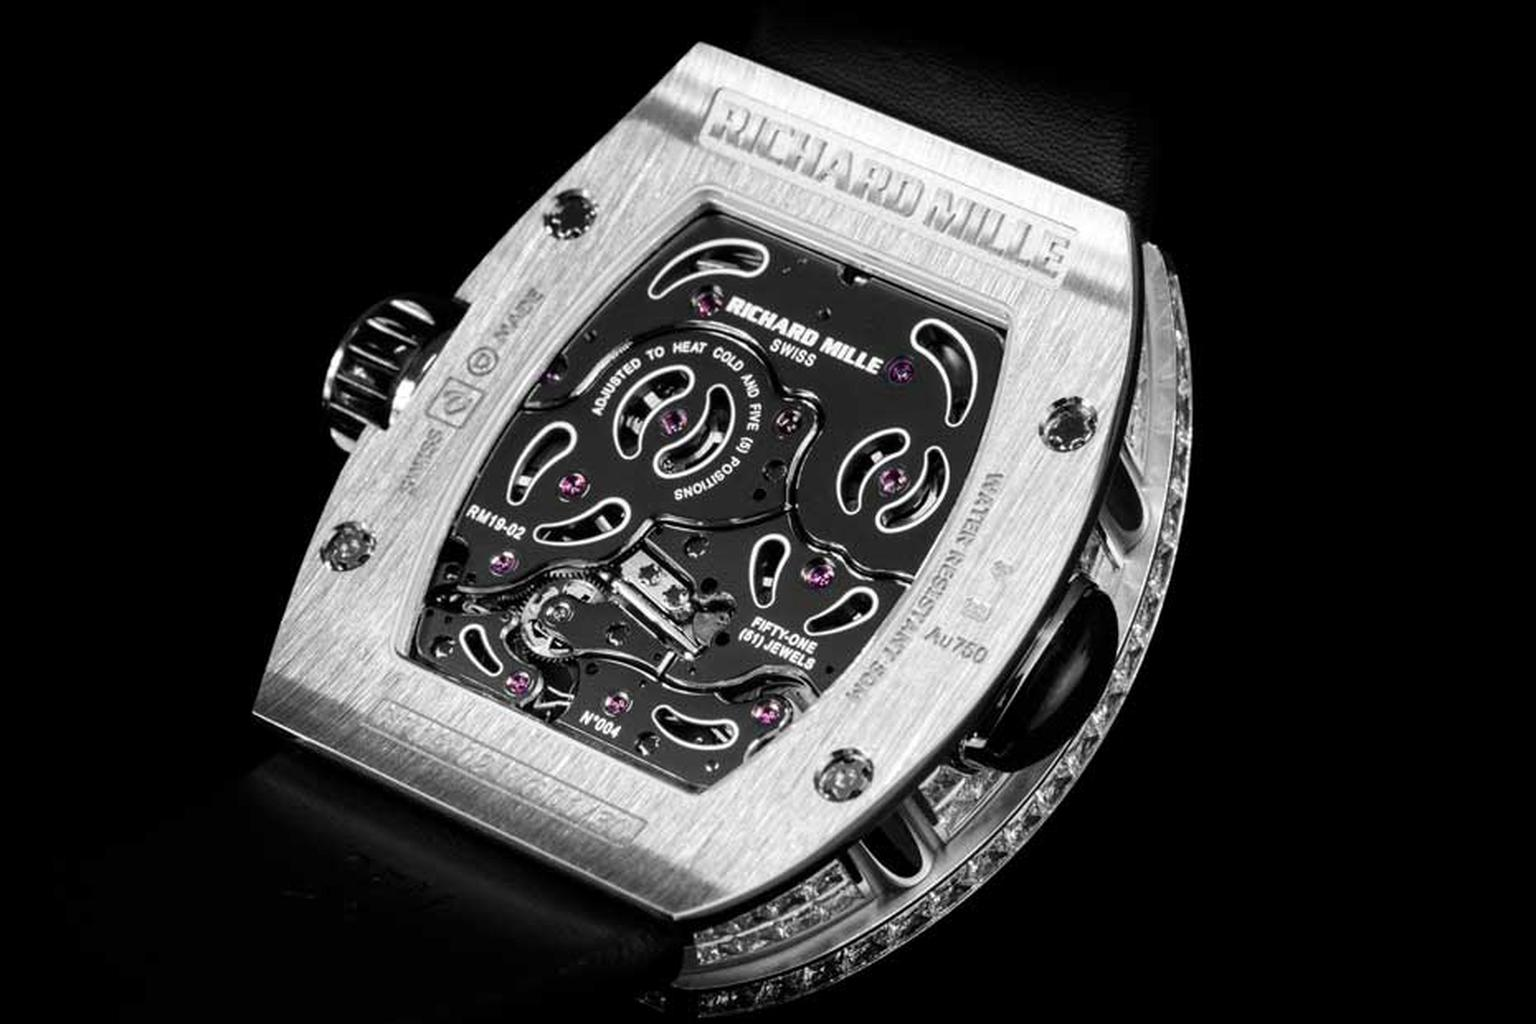 RM 19-02 Tourbillon Fleur, the new luxury ladies' watch from Richard Mille, has a tonneau-shaped case, made of three different layers.